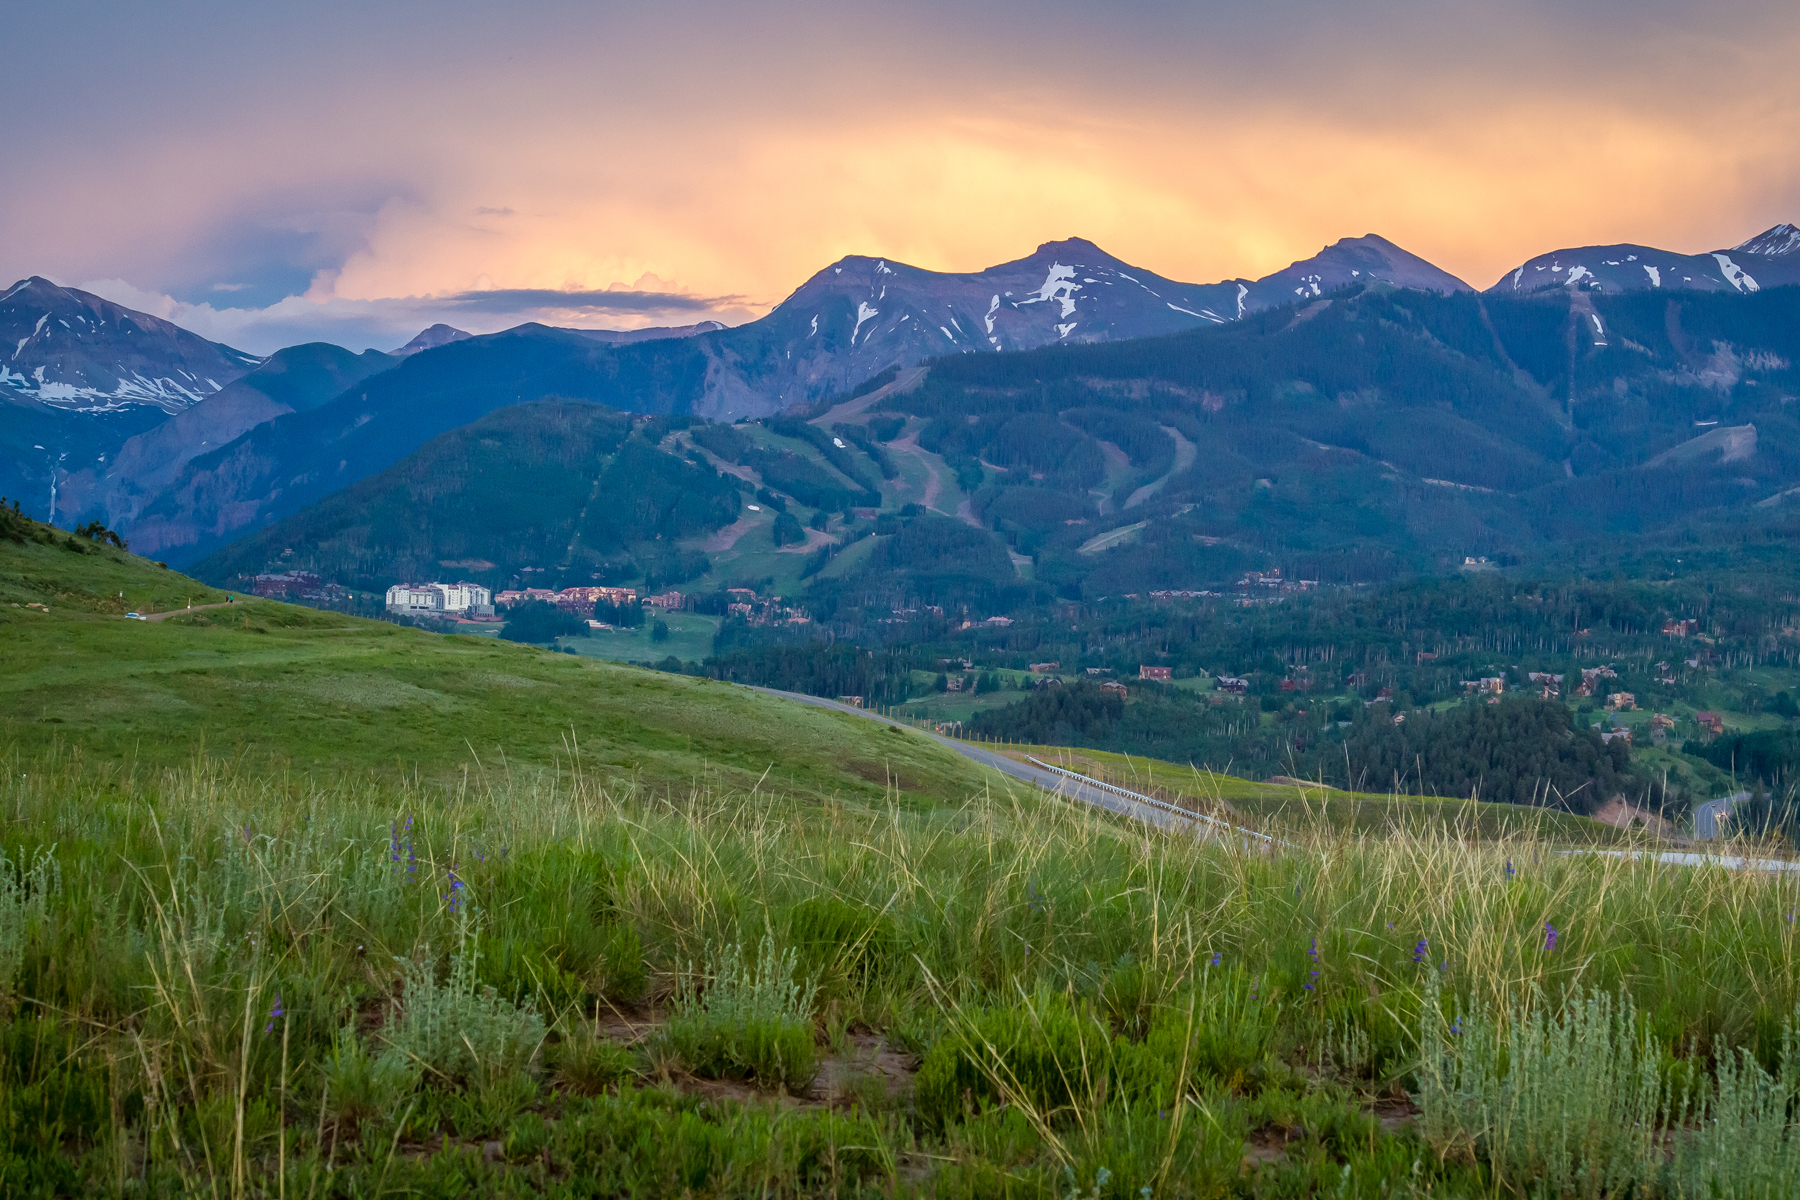 Terreno por un Venta en TBD Last Dollar Road 3, Sunshine Ridge Telluride, Colorado, 81435 Estados Unidos